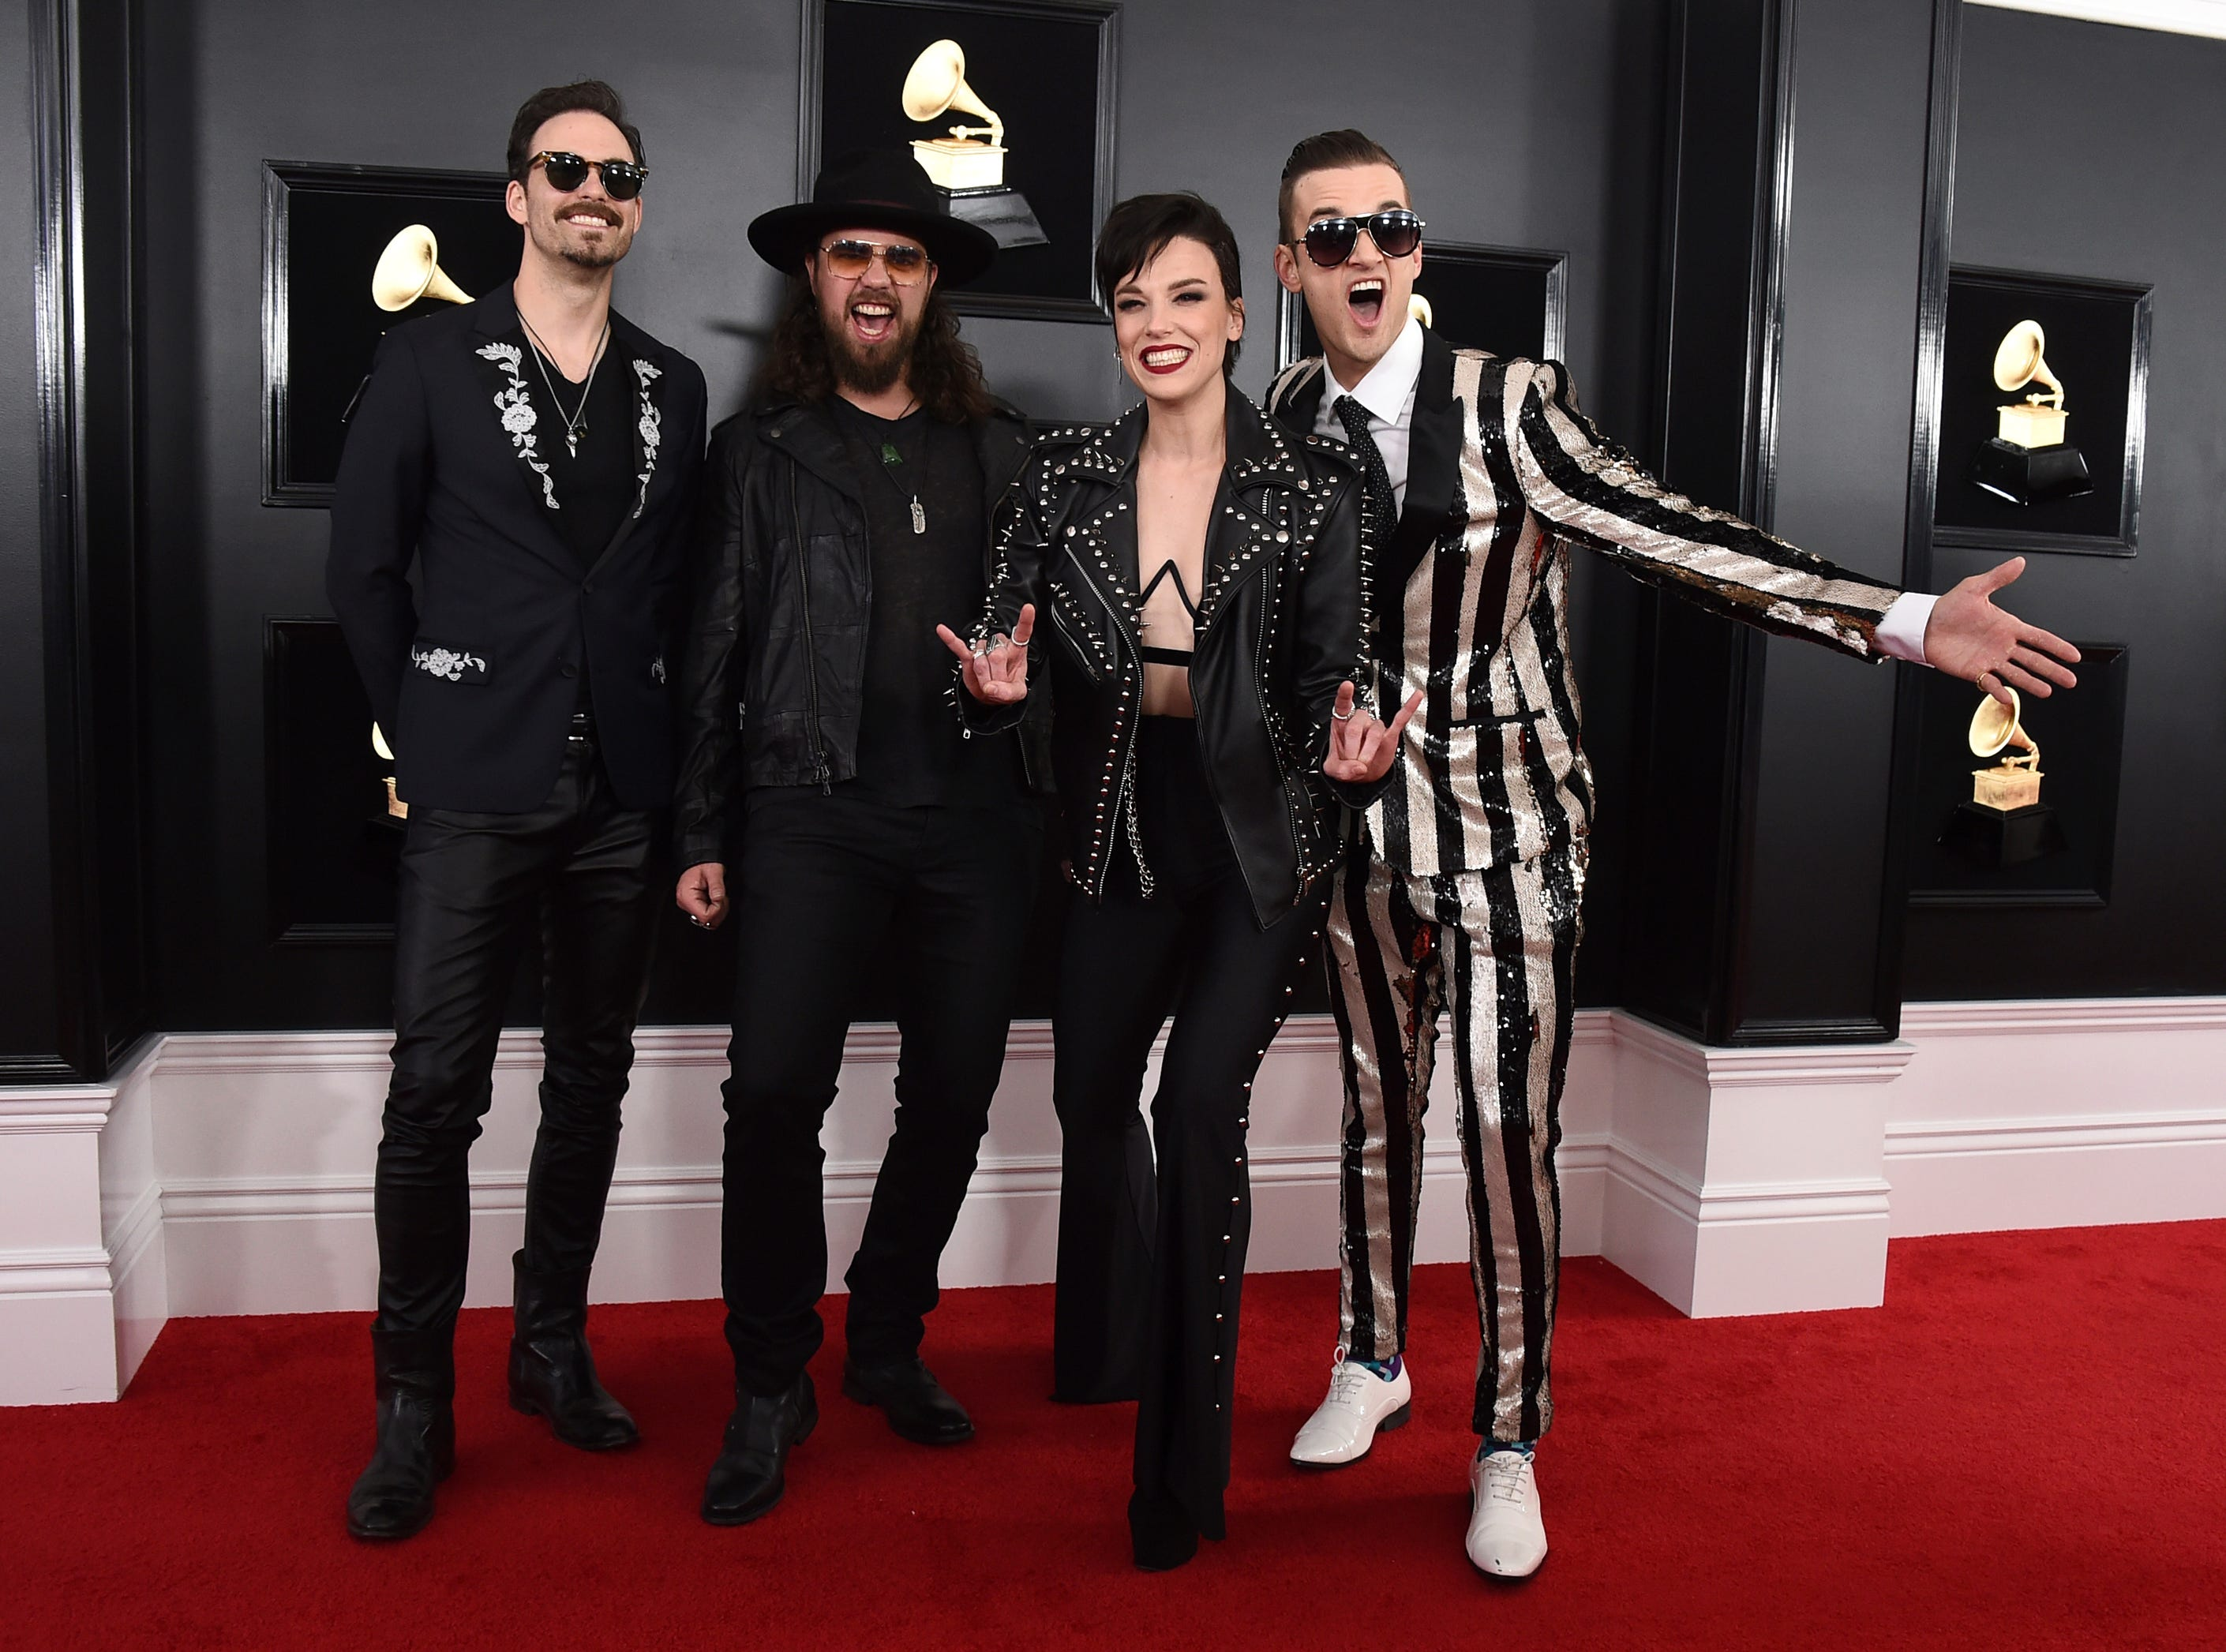 Josh Smith, from left, Joe Hottinger, Lzzy Hale, and Arejay Hale of Halestorm arrive at the 61st annual Grammy Awards.